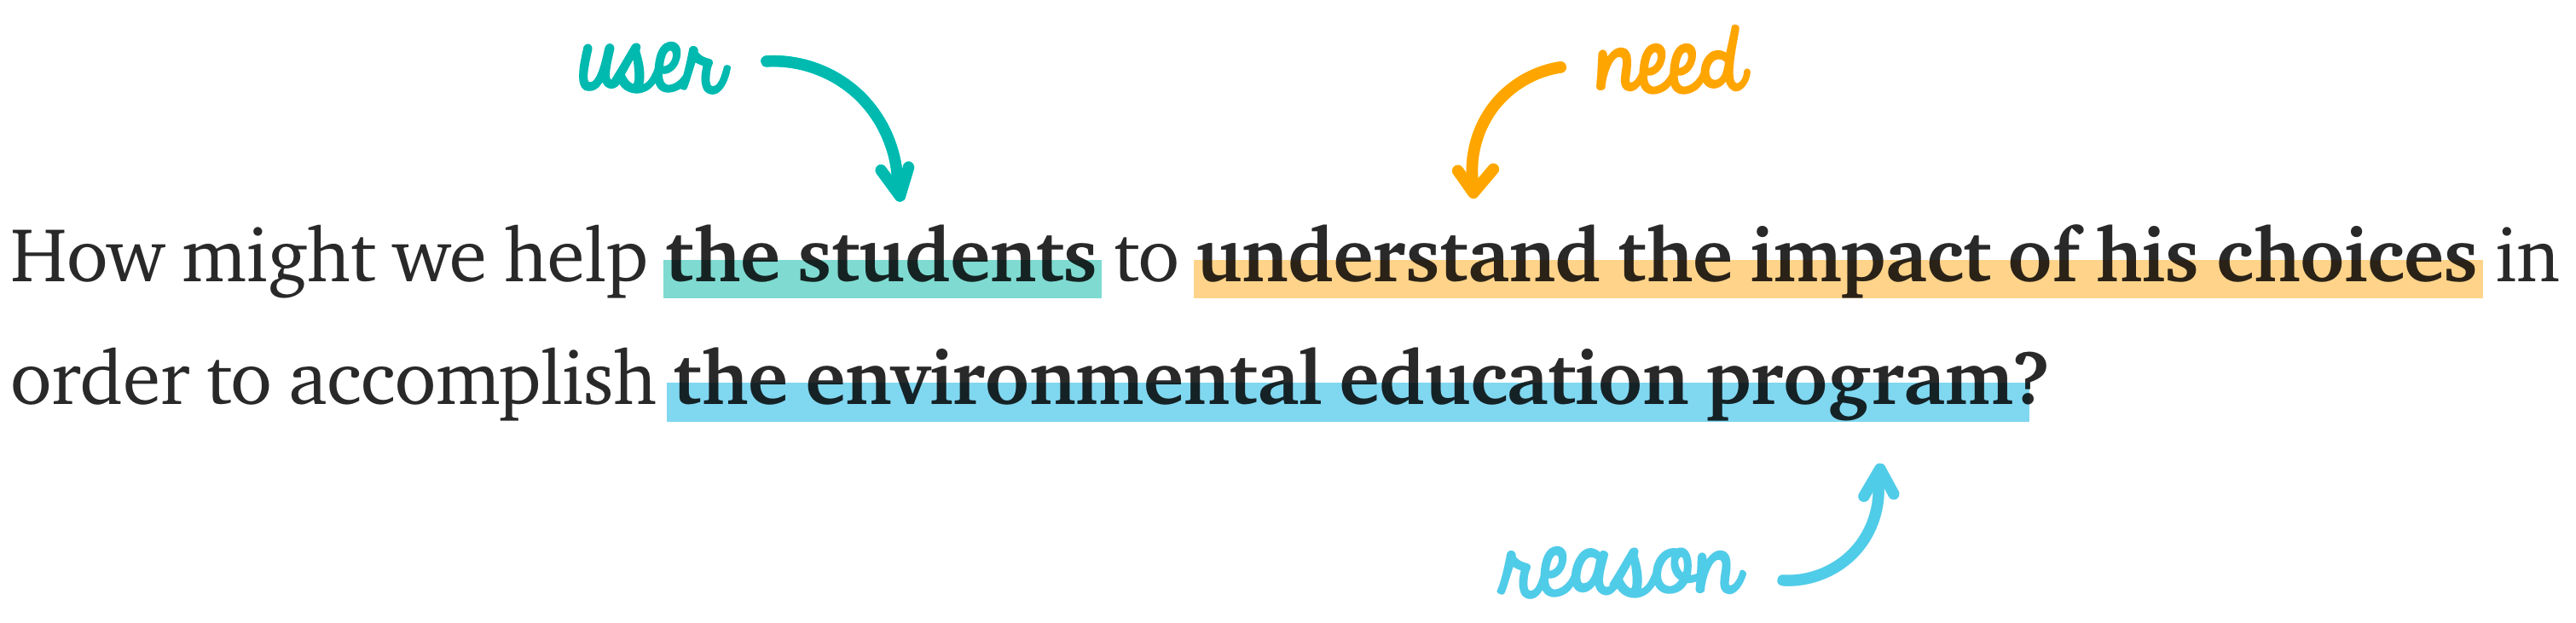 Help the students to understand the impact of his choices in order to accomplish the environmental education program.